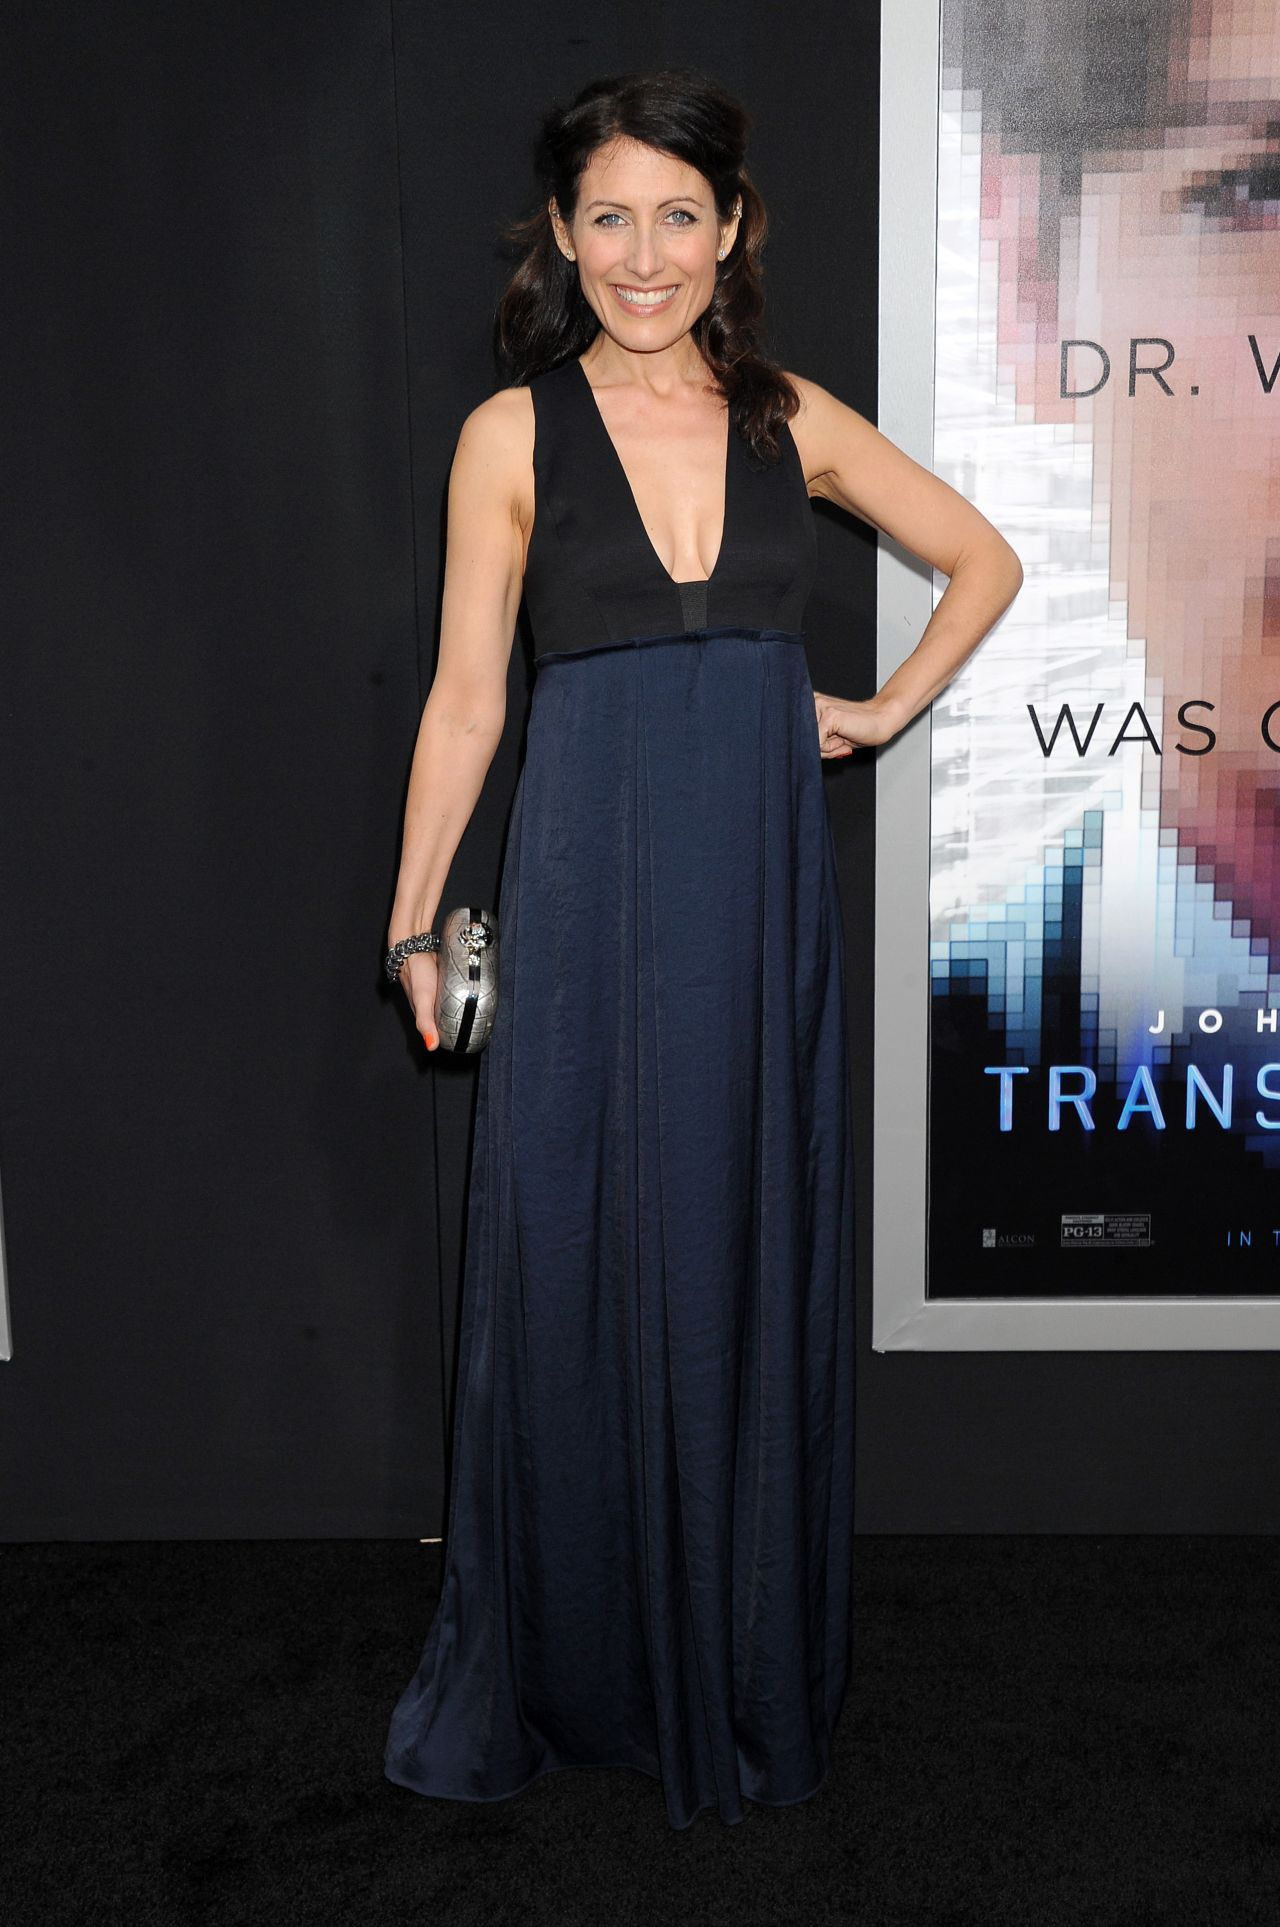 Lisa Edelstein Transcendence Premiere In Los Angeles